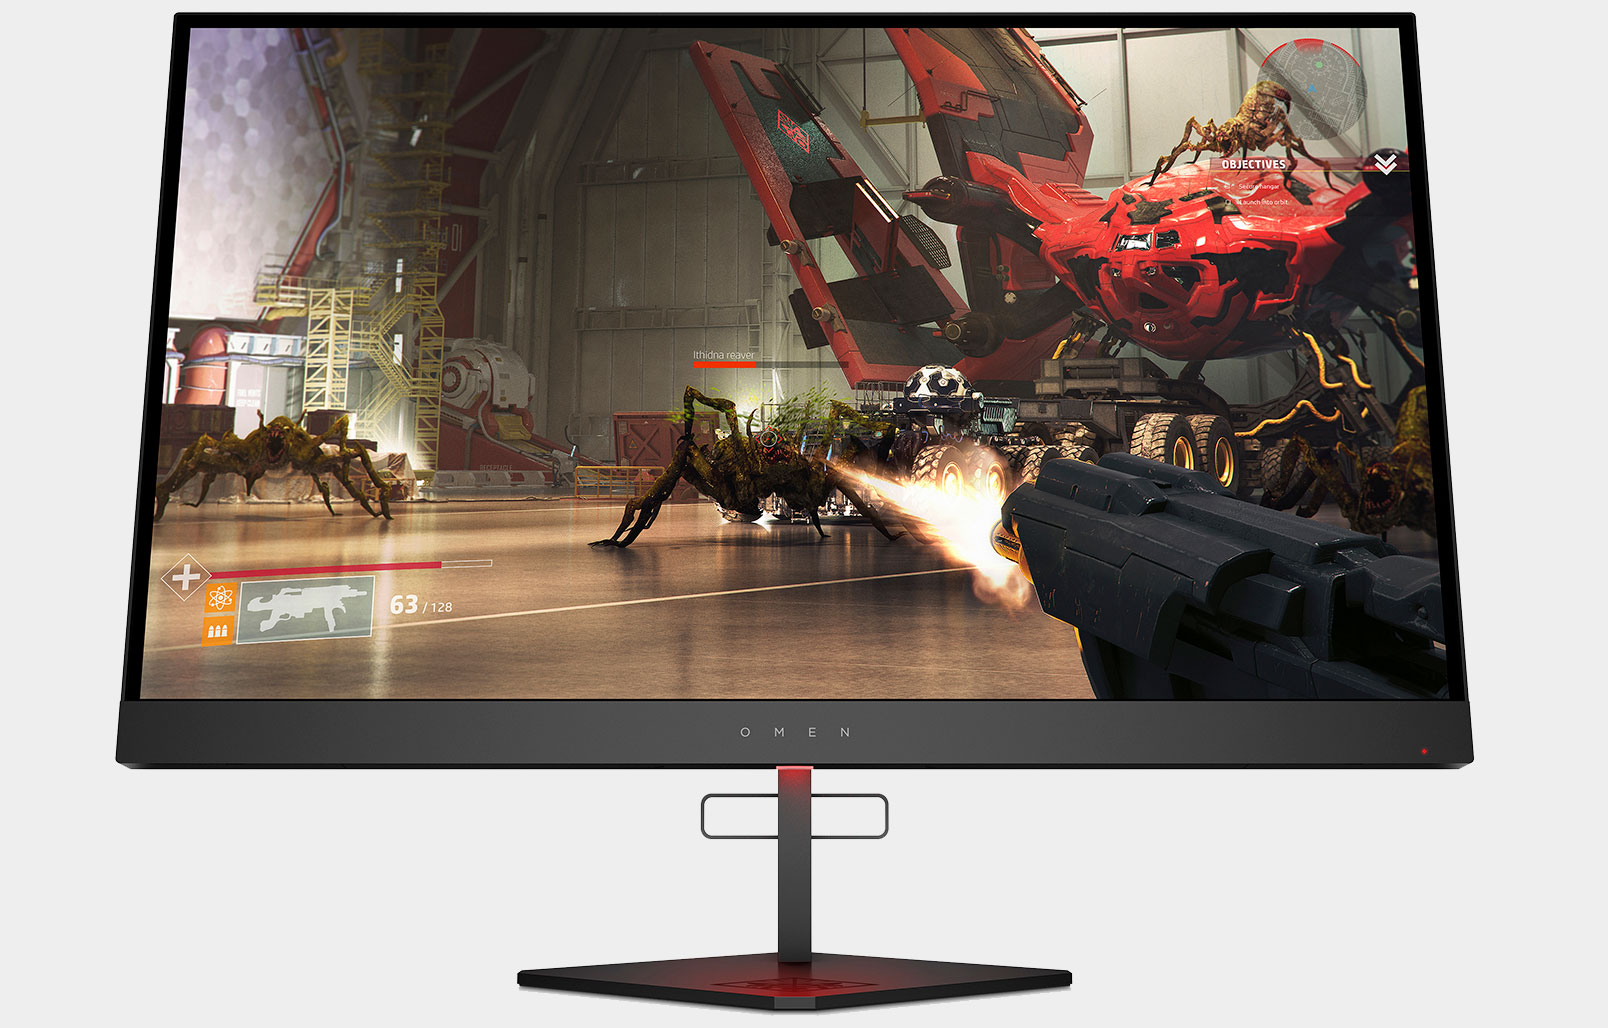 HP is releasing a 27-inch 240Hz QHD gaming monitor with HDR for $649 | PC Gamer